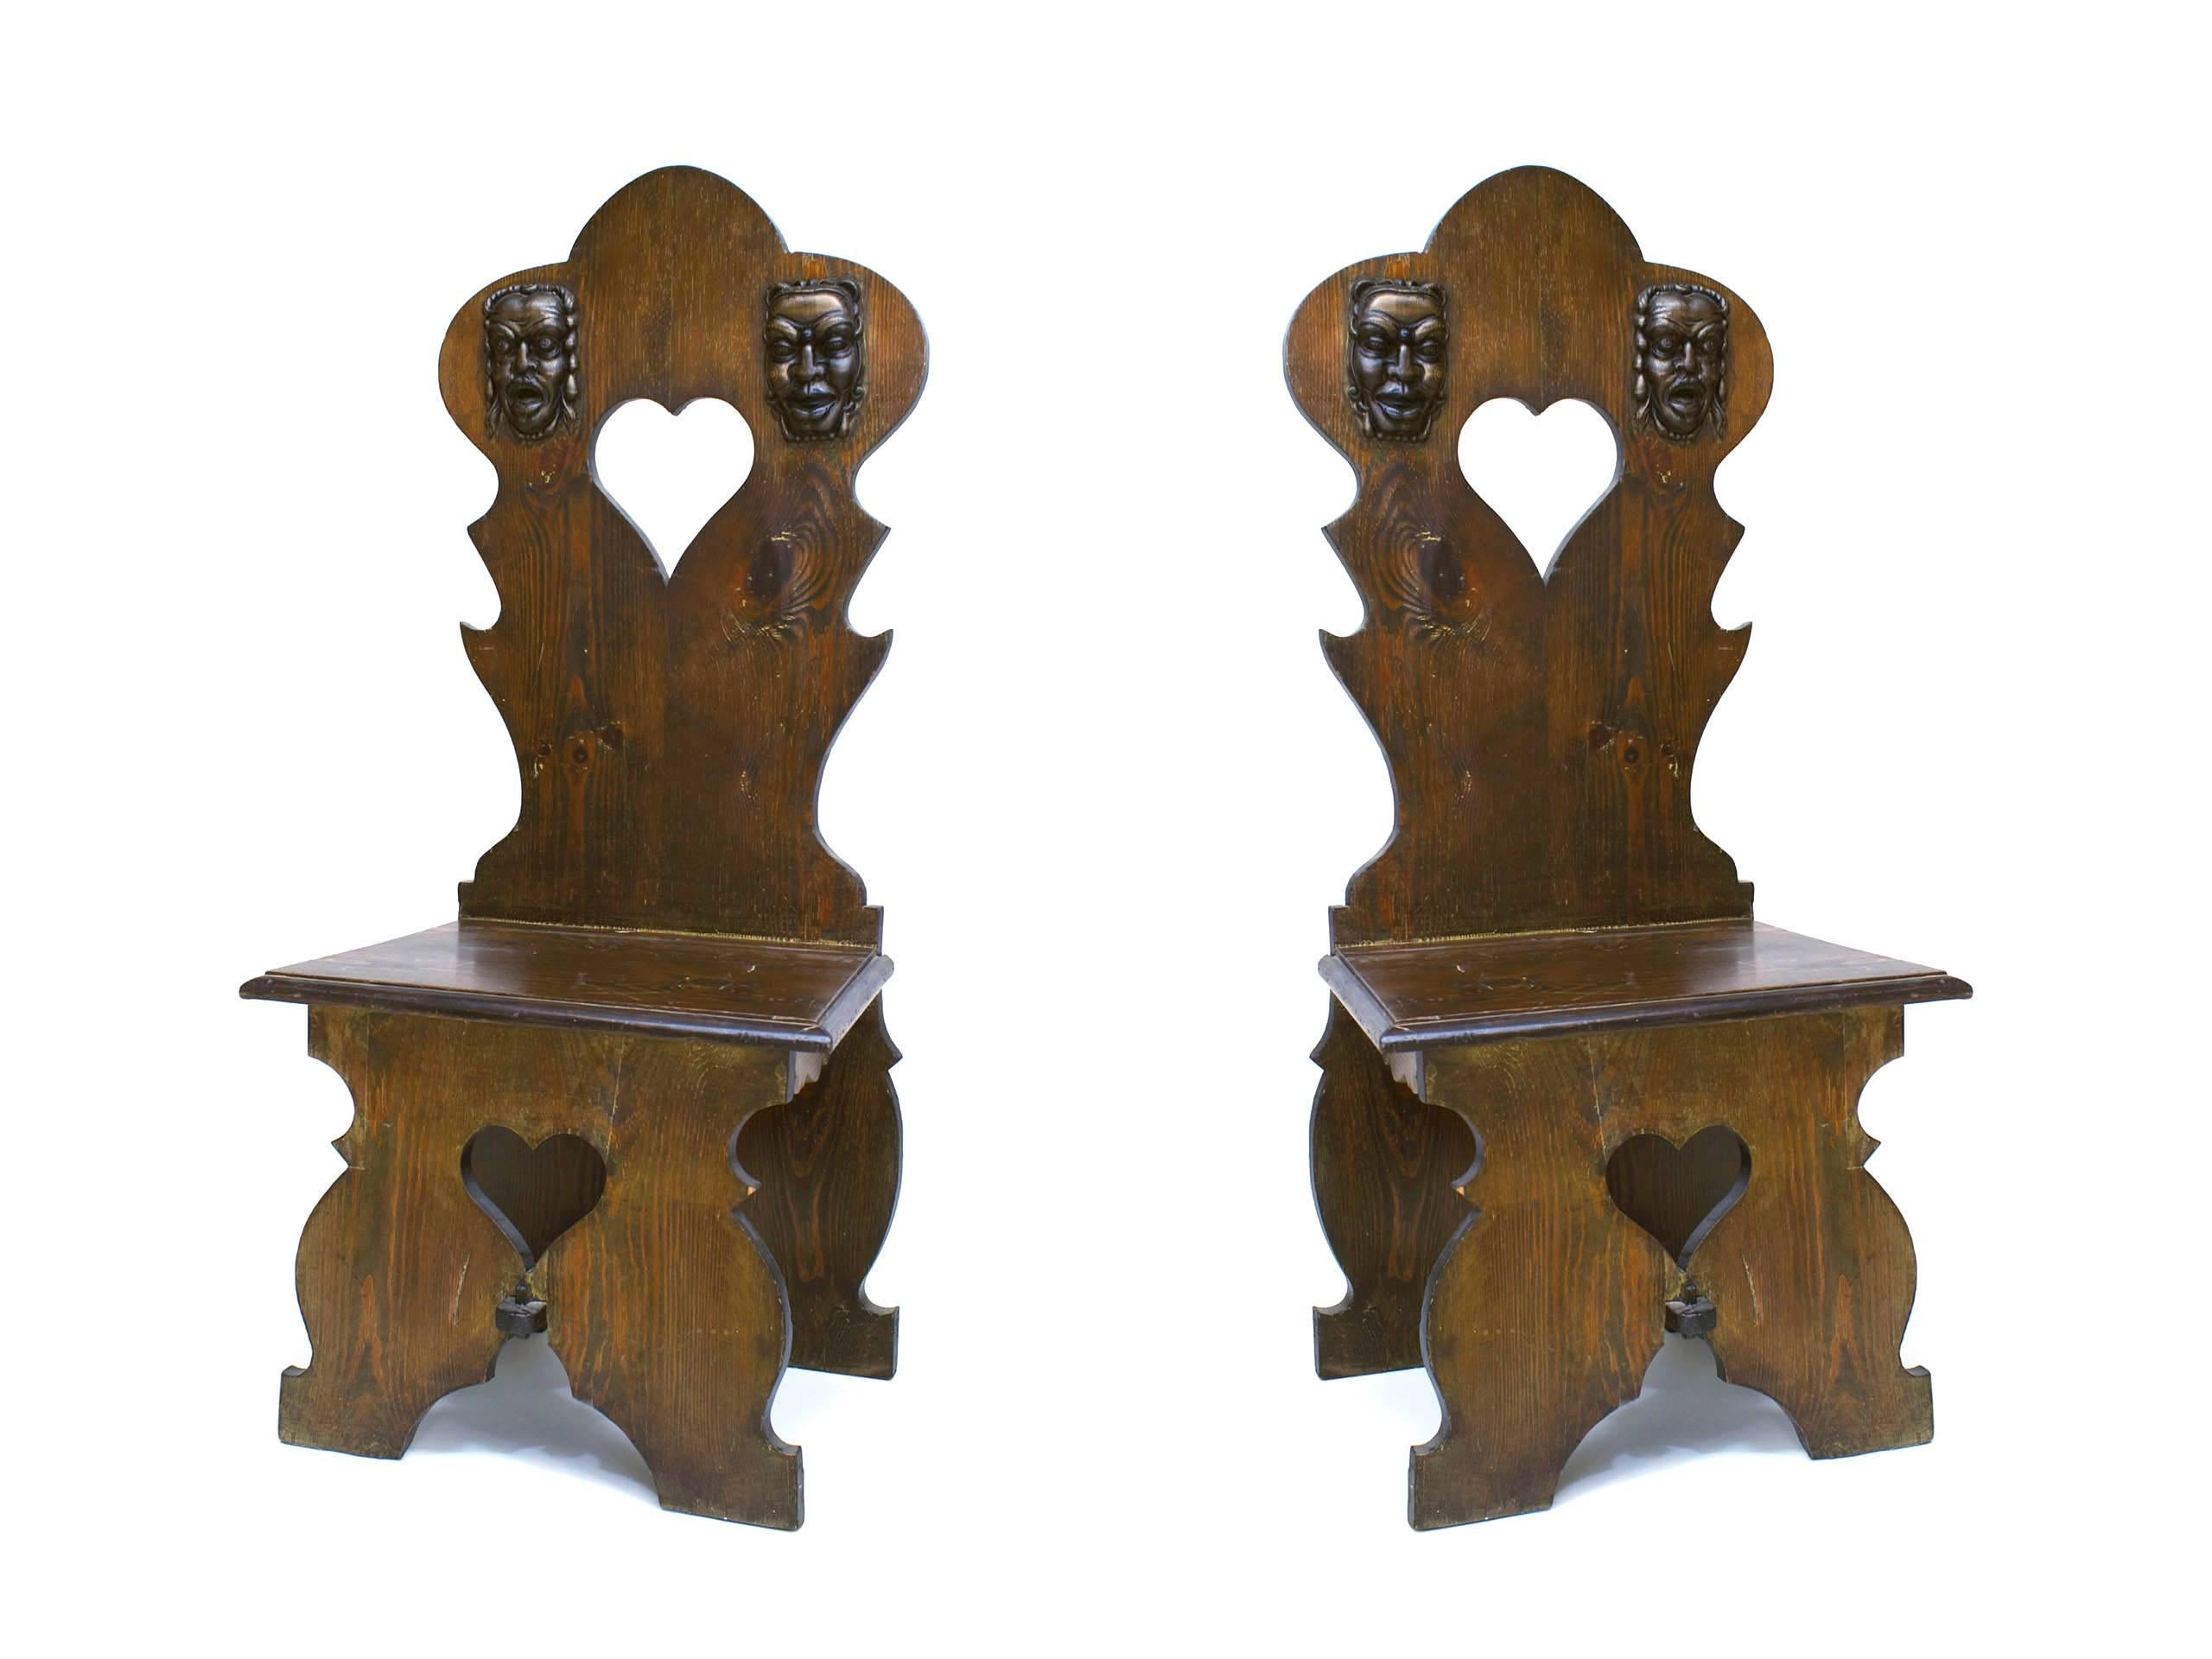 Pair of italian renaissance style sgabello side chairs for sale at